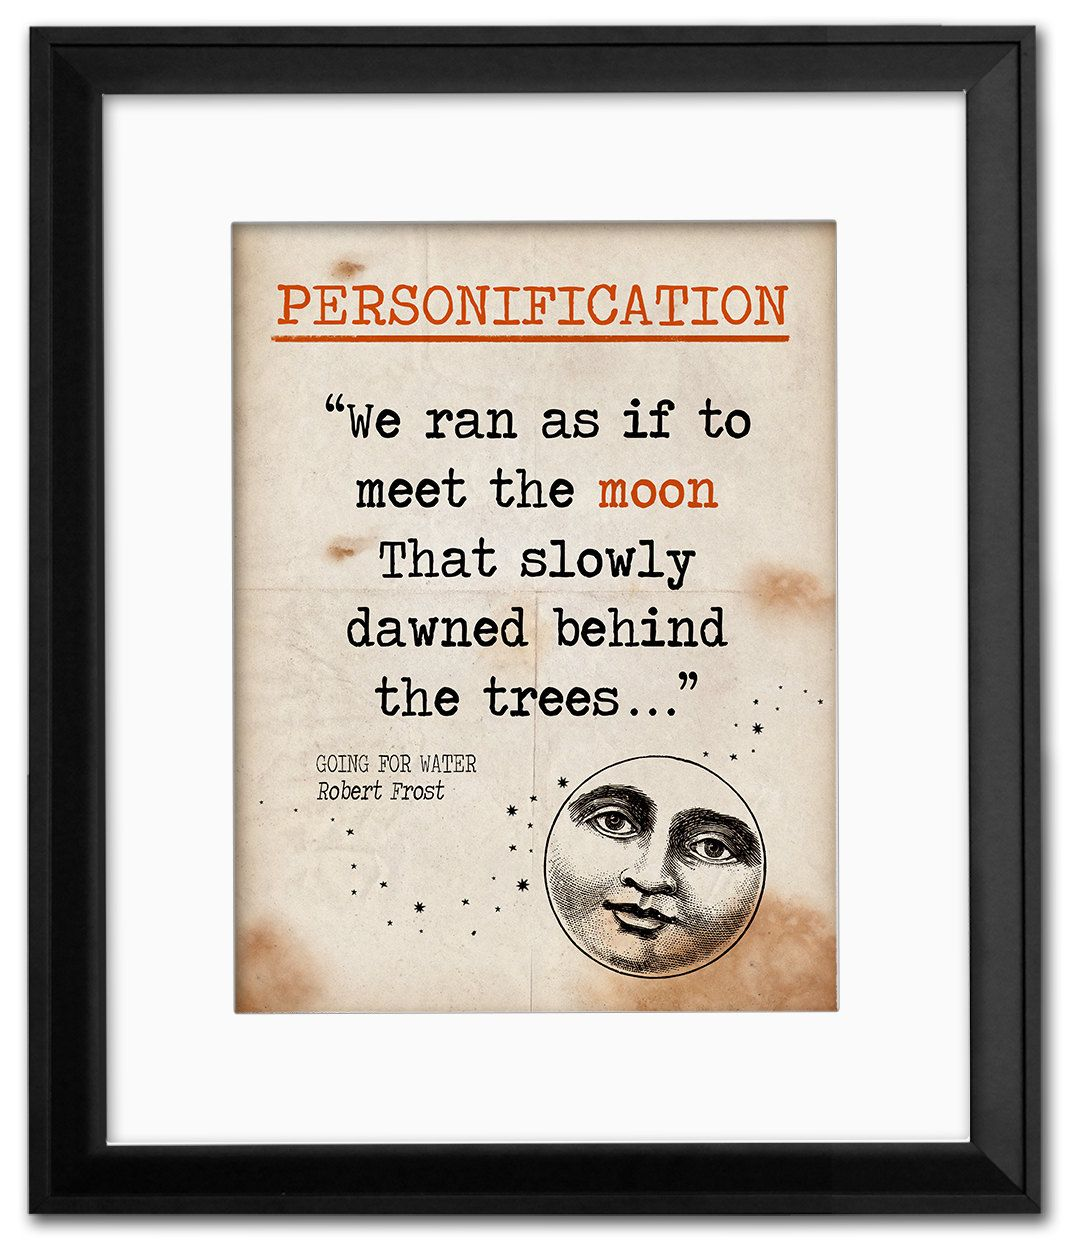 To kill a mockingbird symbolism quote educational art print going for water personification quote educational art print featuring robert frost vintage style literary buycottarizona